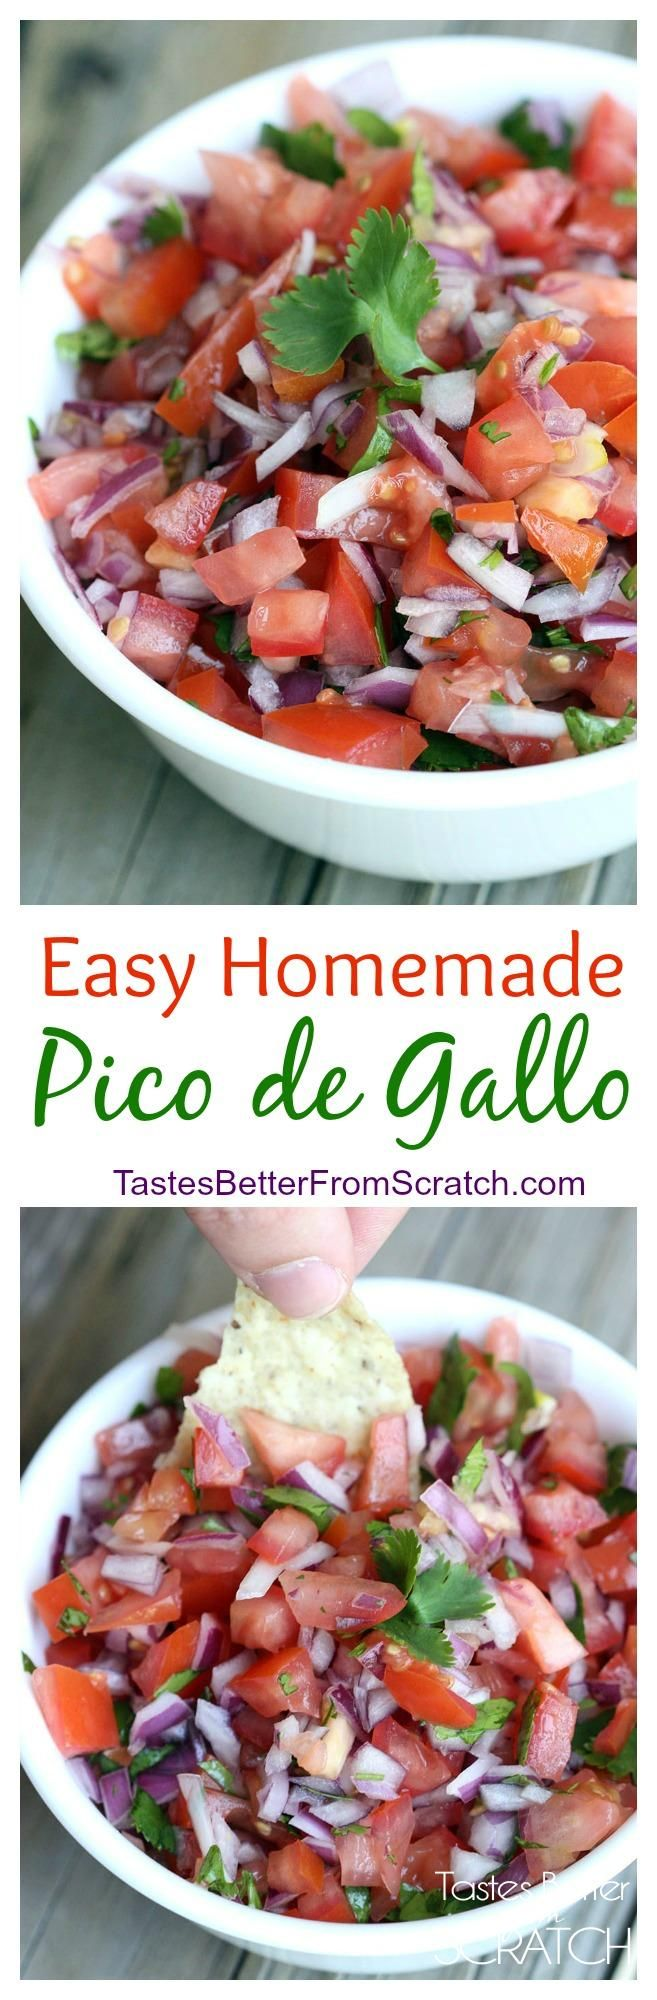 Easy homemade Pico de Gallo recipe from TastesBetterFromScratch.com